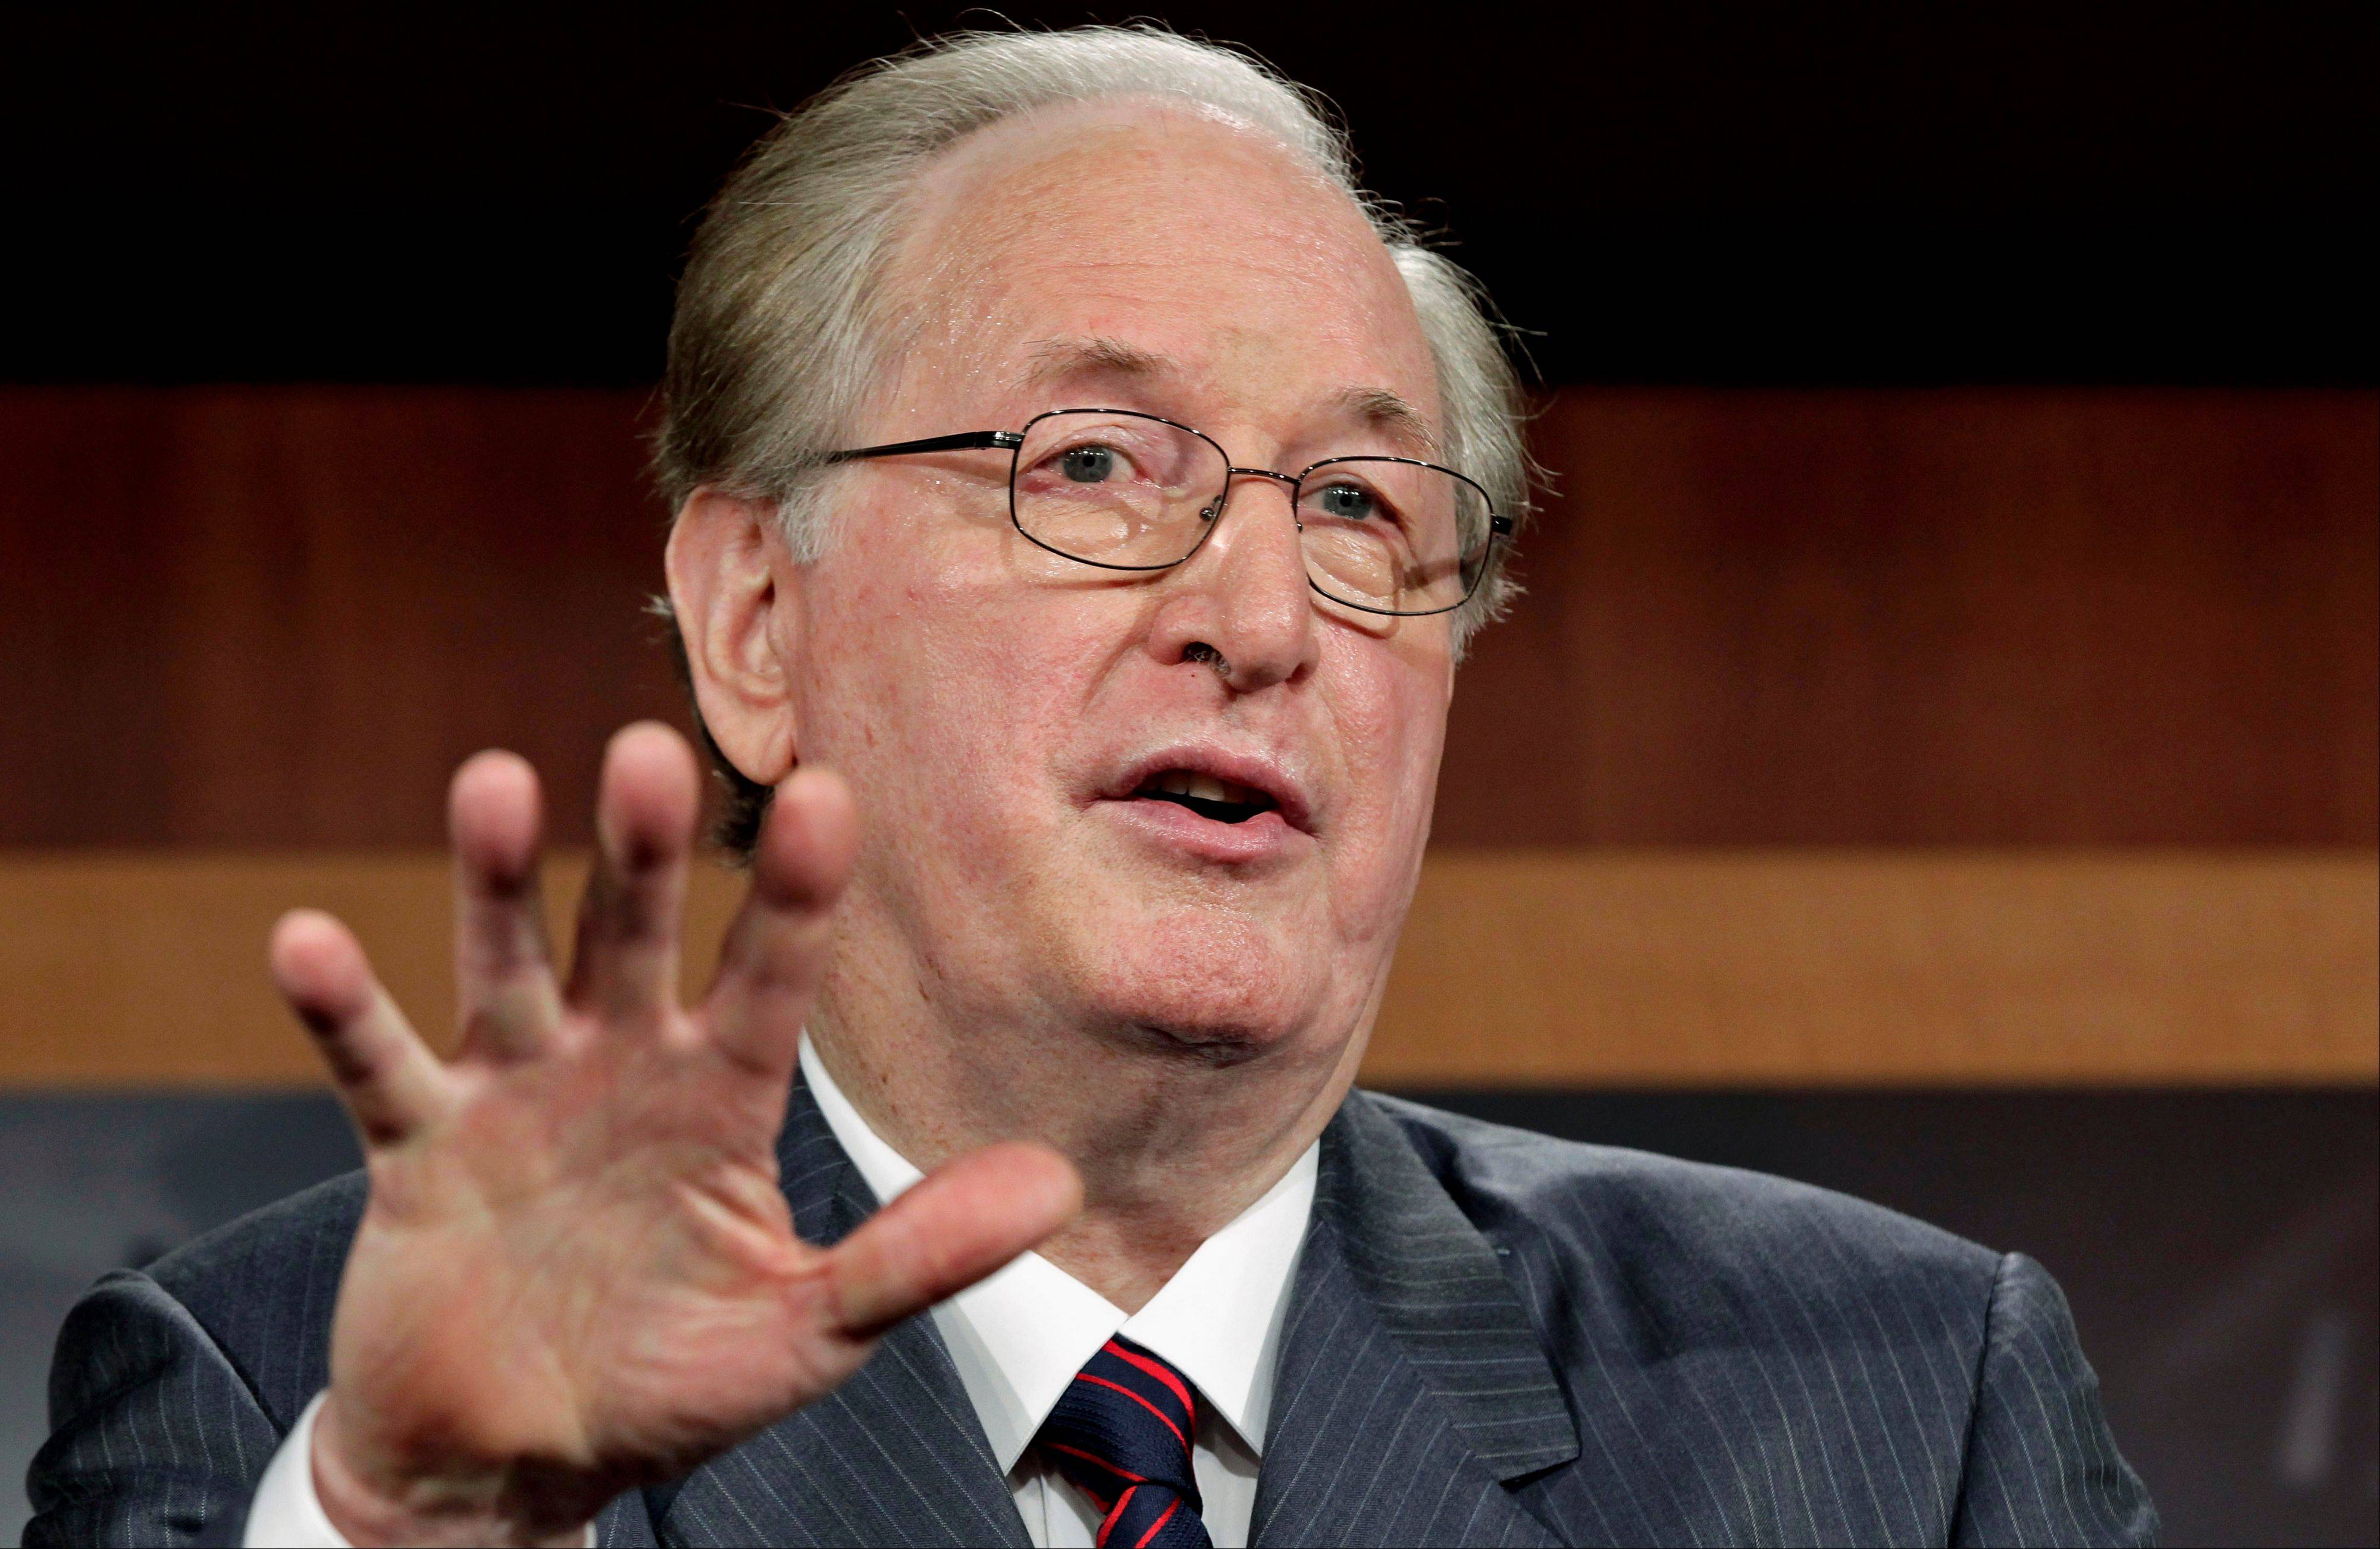 Sen. Jay Rockefeller, who came to West Virginia as a young man from one of the world's richest families to work on antipoverty programs and remained in the state to build a political legacy, announced Friday he will not seek a sixth term.